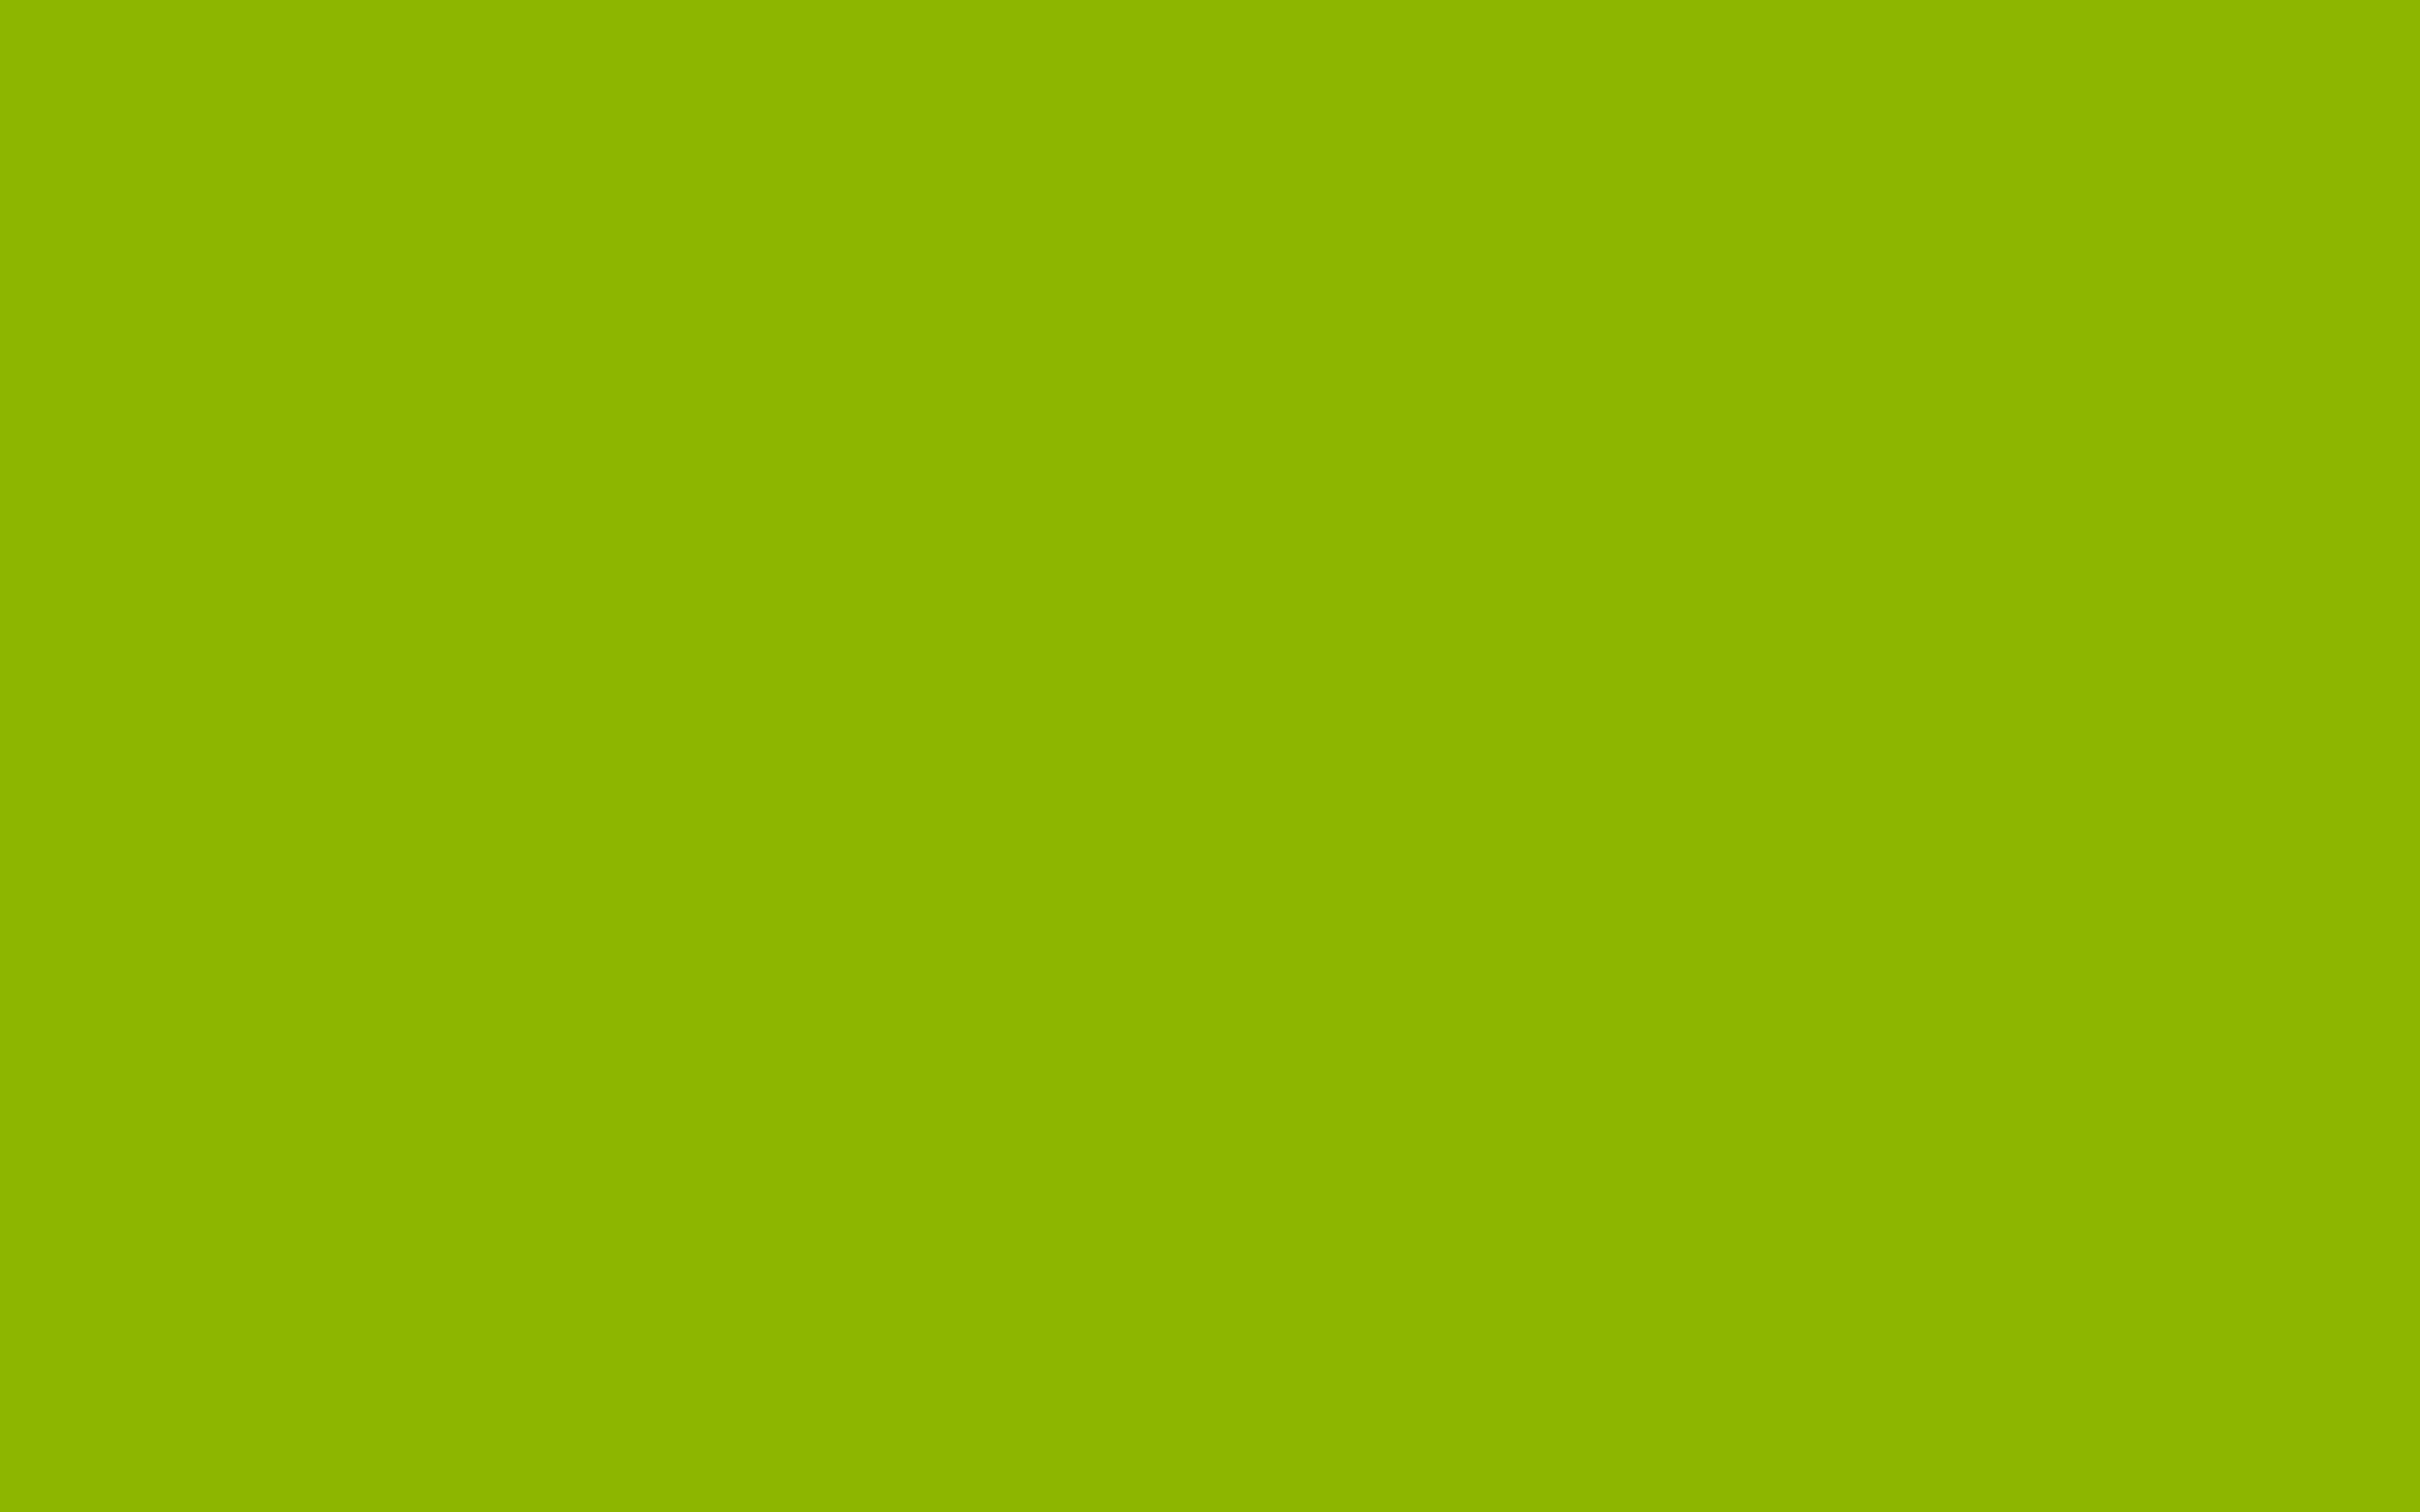 2560x1600 apple green solid color background - Apple Pictures To Color